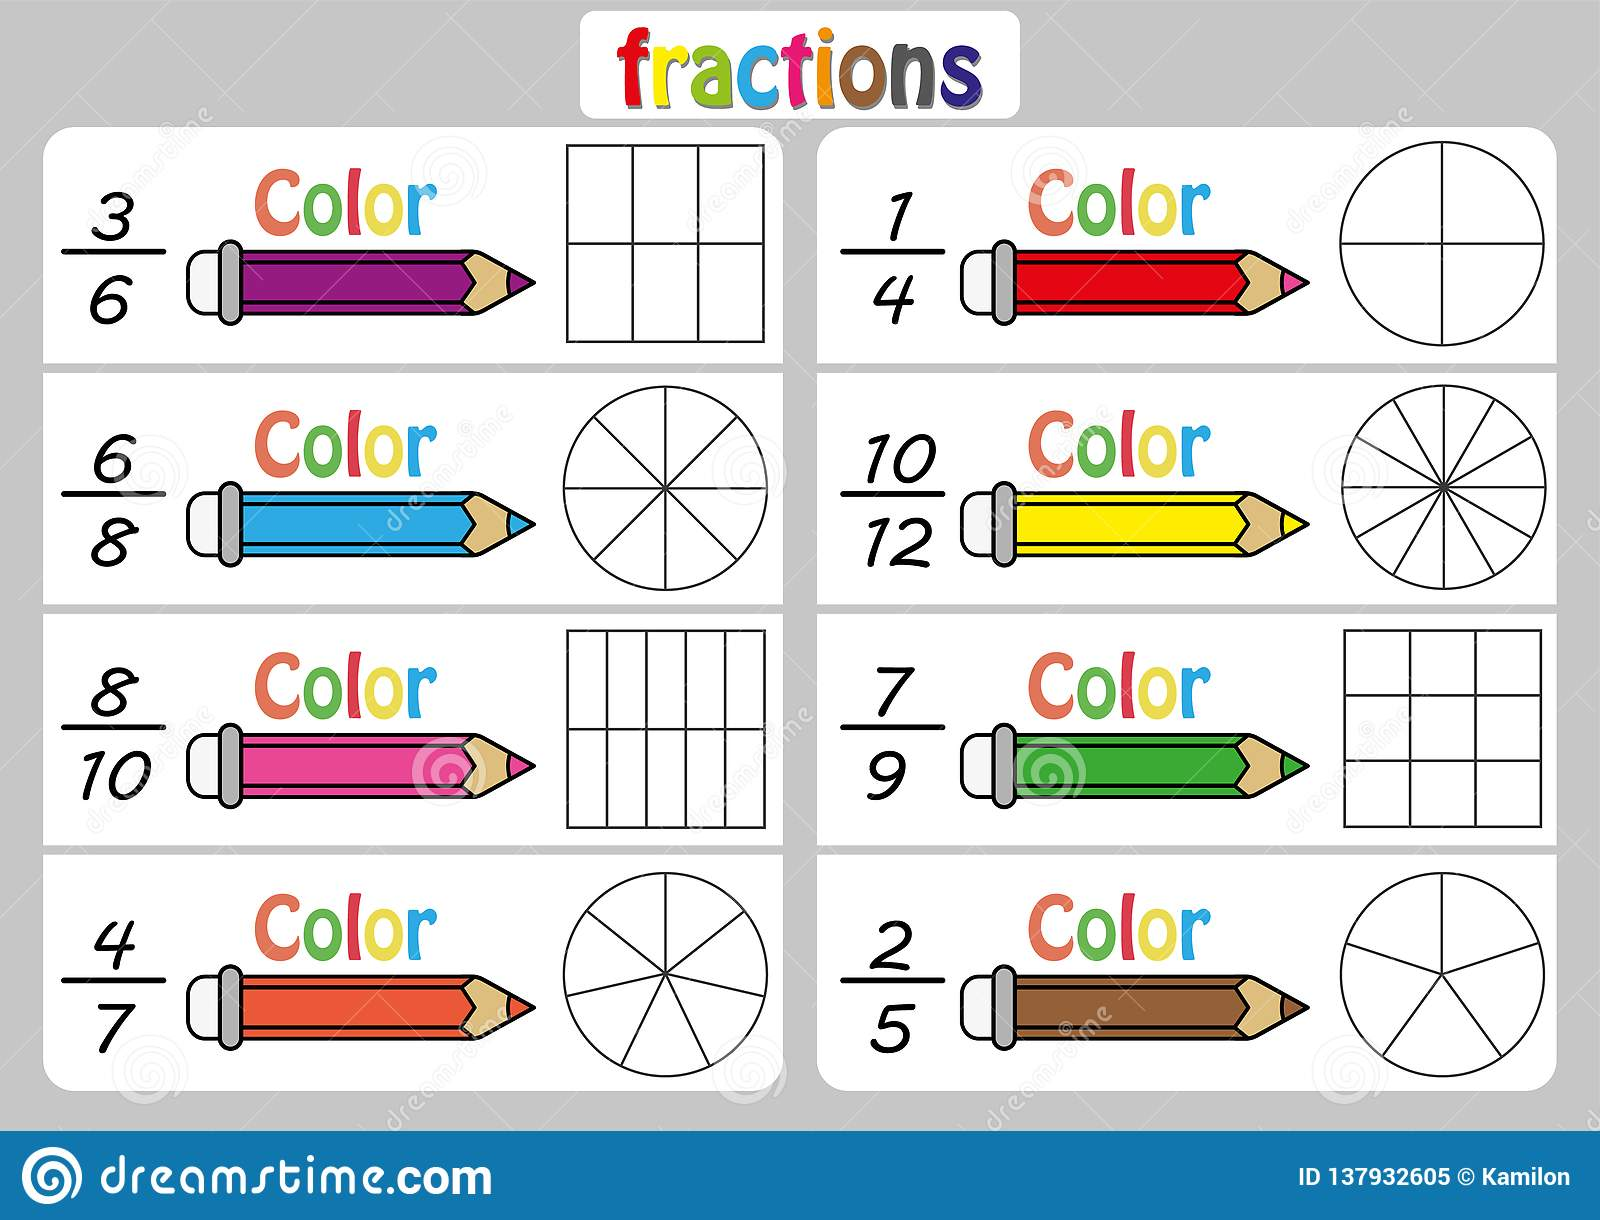 Fraction Diagrams Worksheet